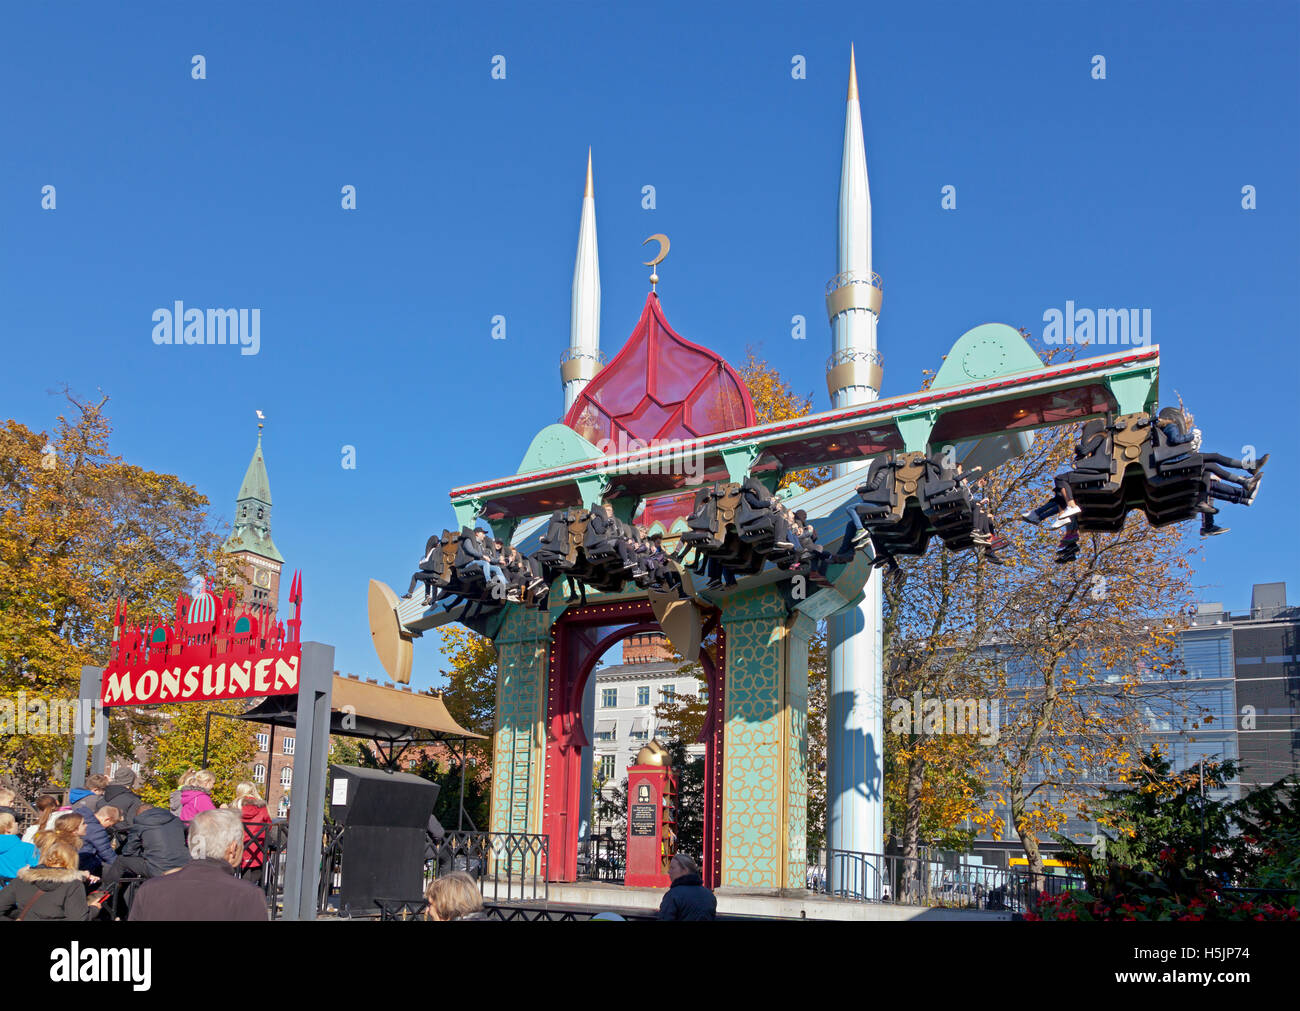 Tivoli Without Rides Monsunen The Monsoon Ride In The Tivoli Gardens In Copenhagen On